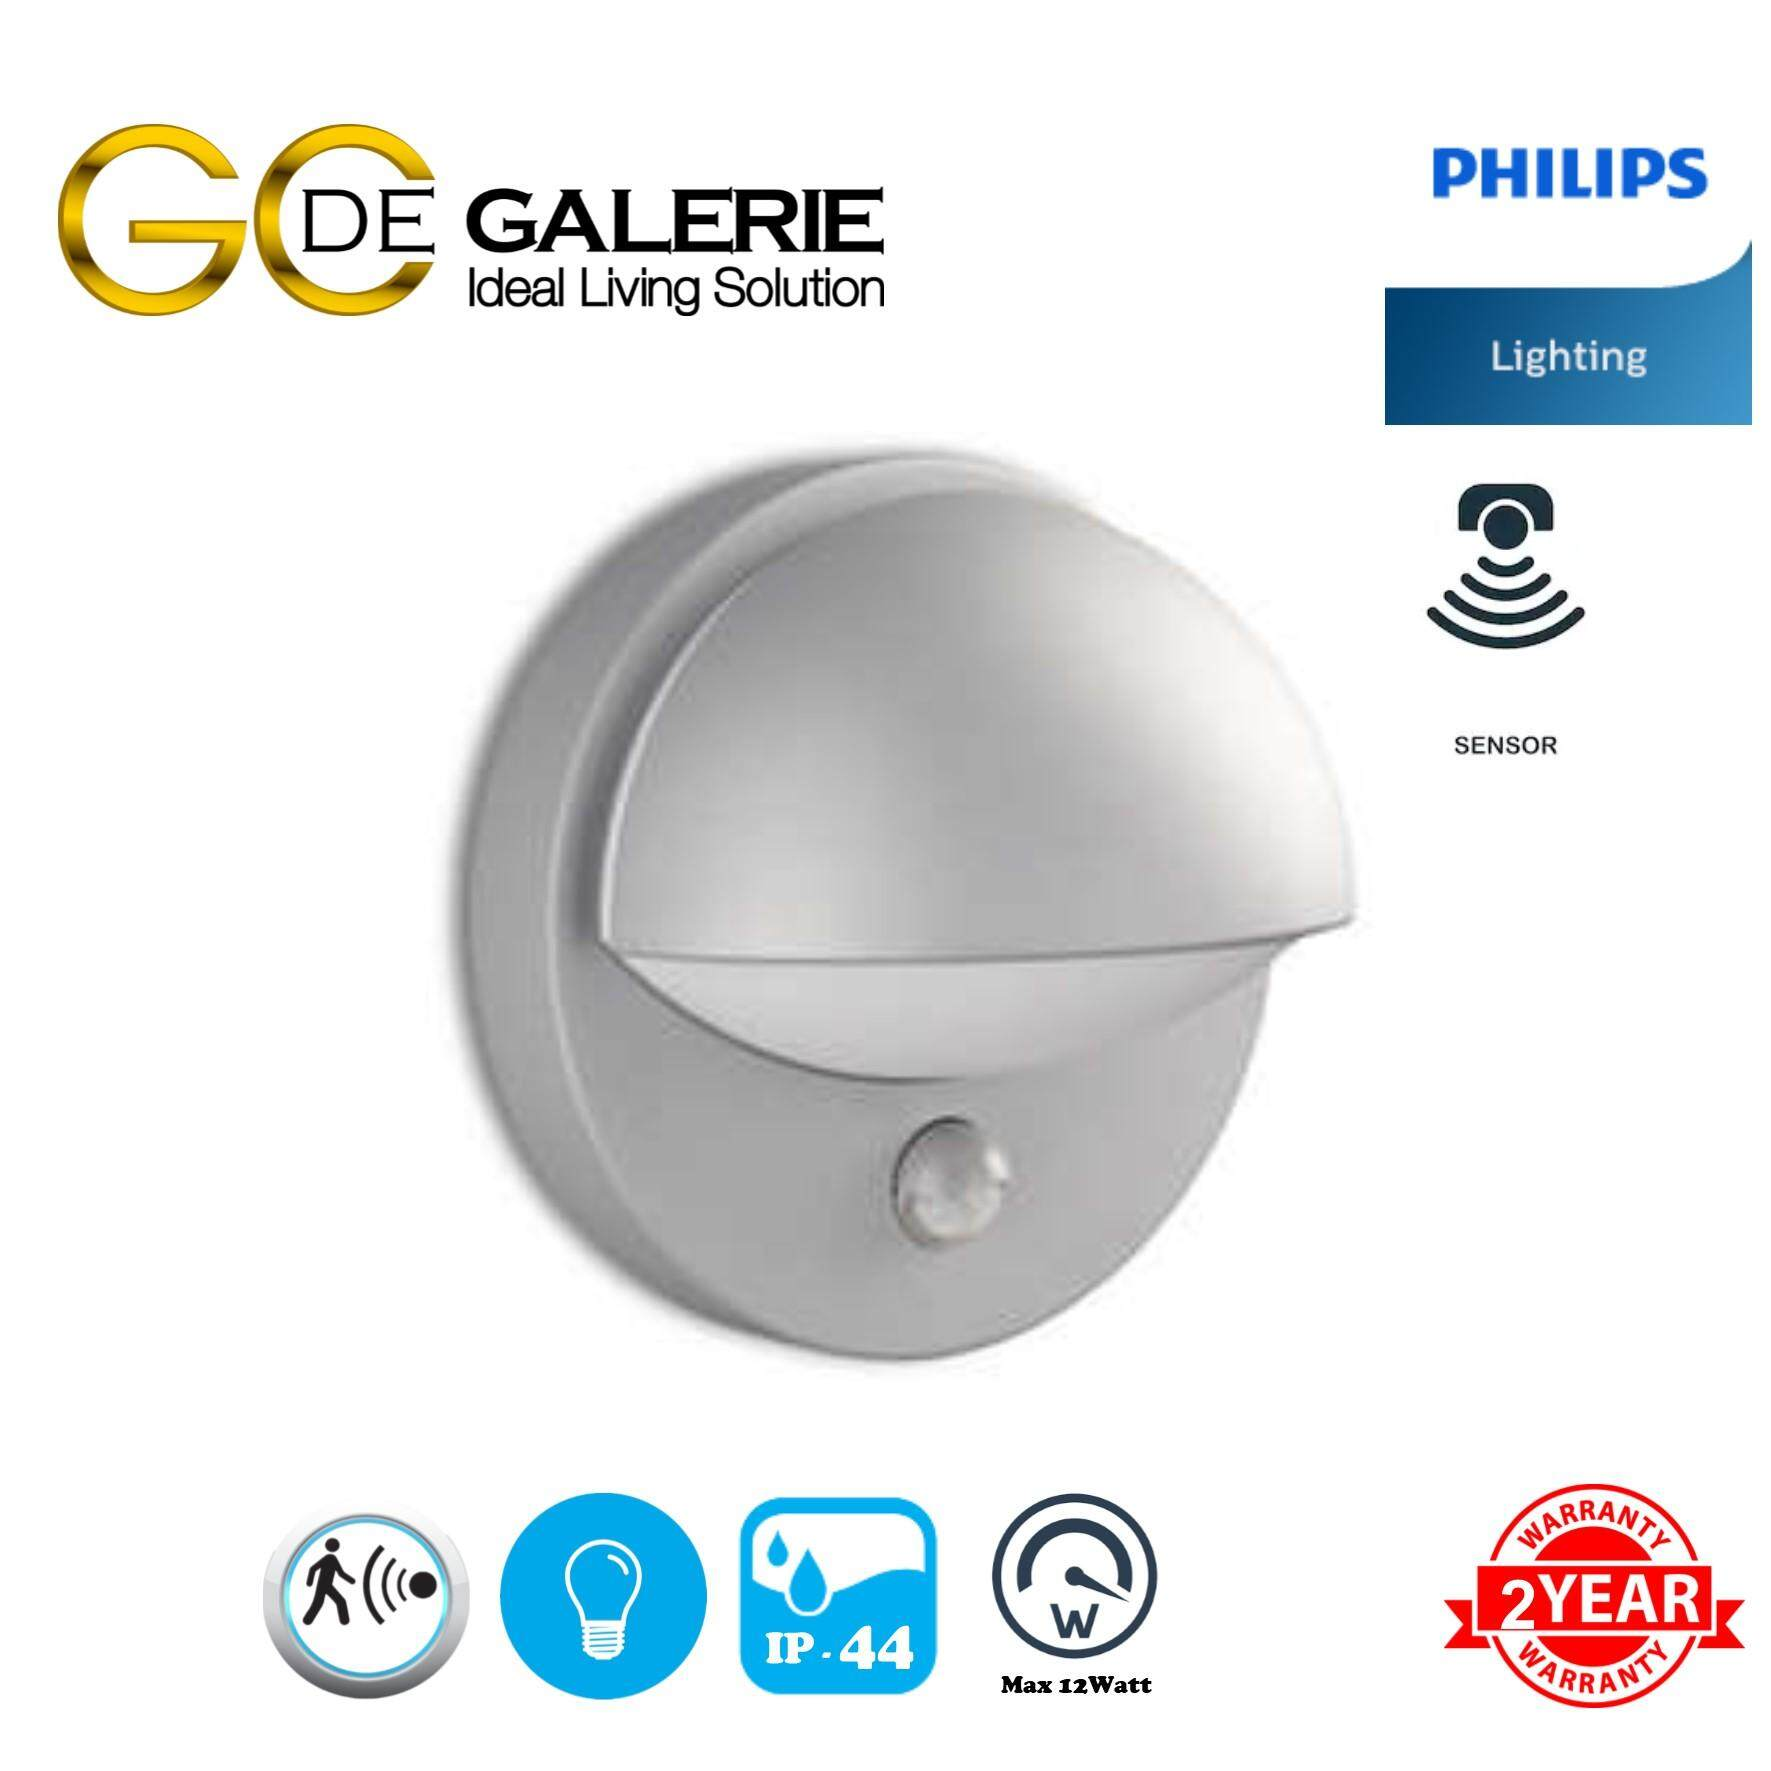 WALL LIGHT PHILIPS 16246 GREY 1x12W